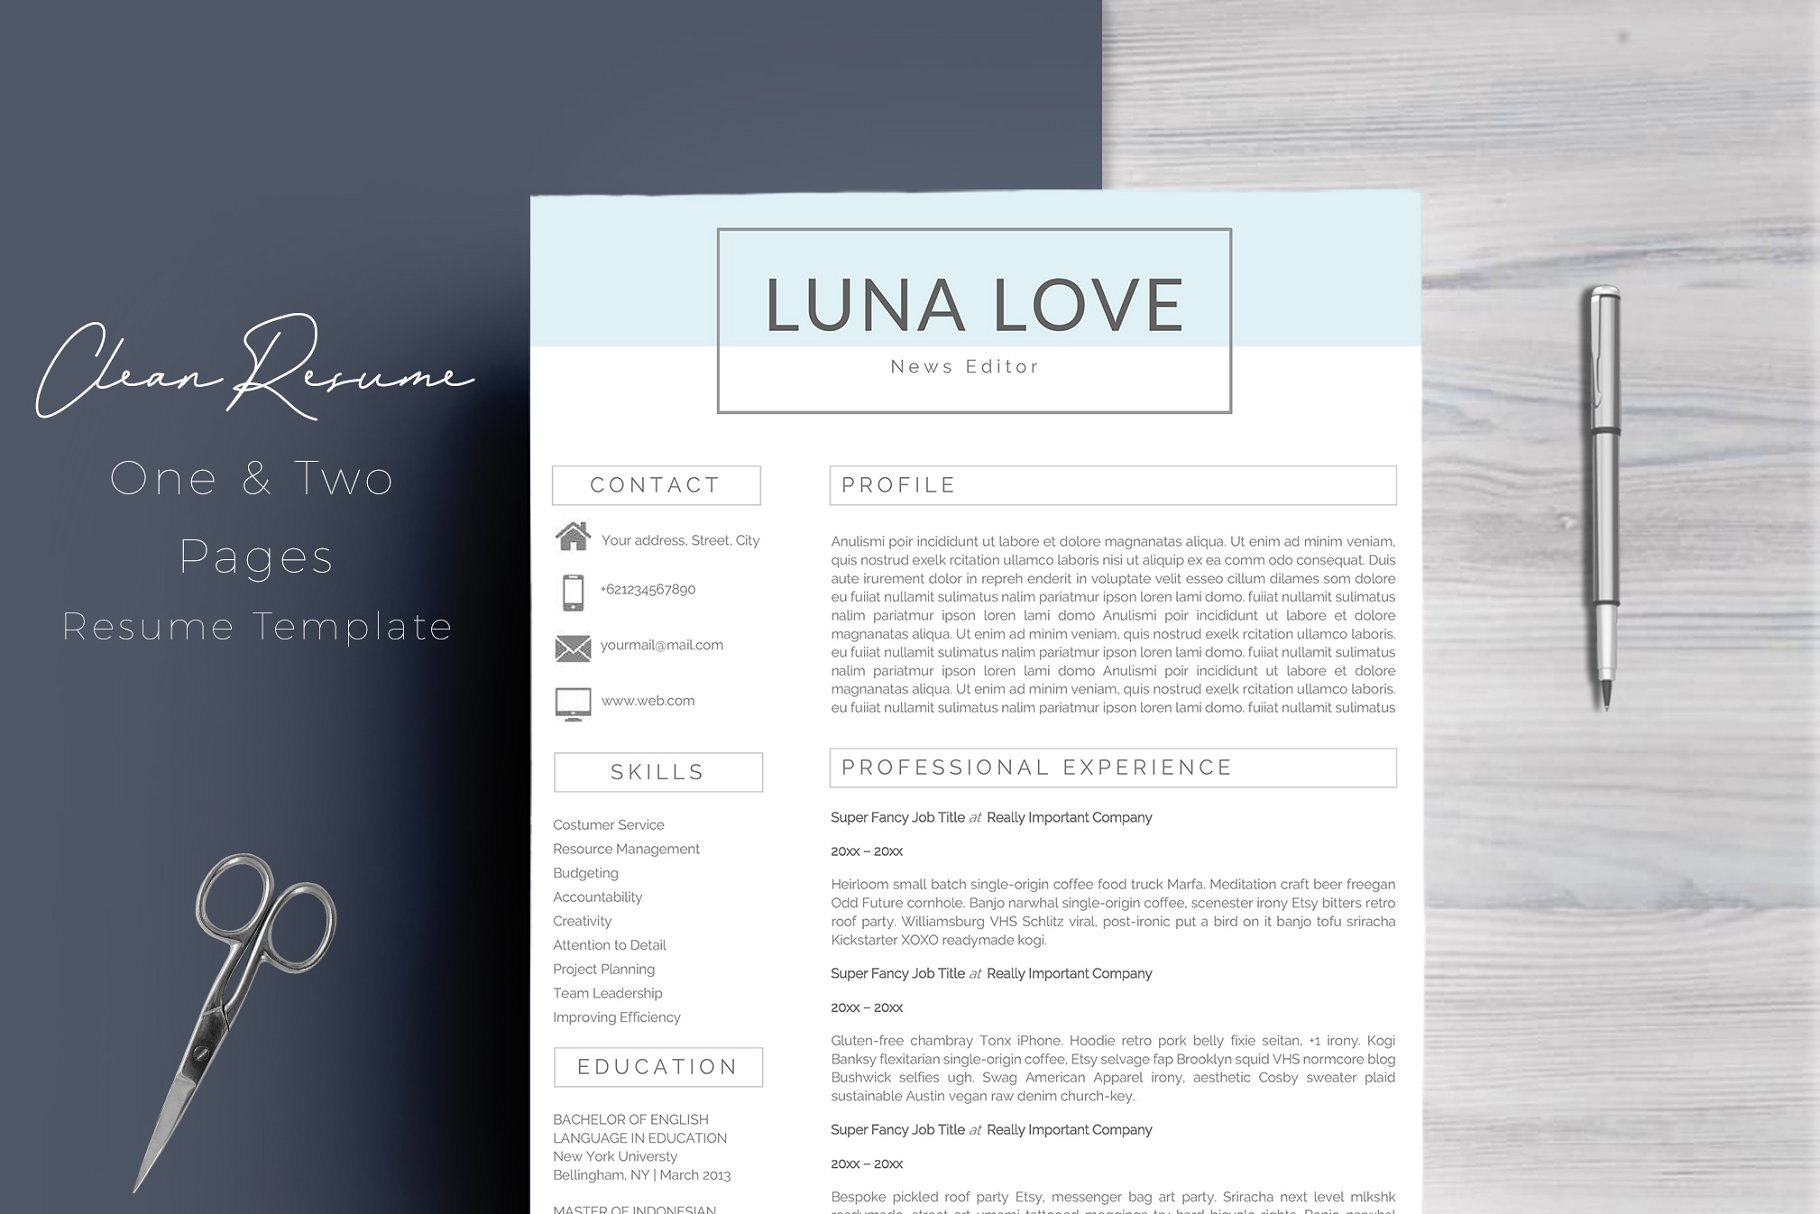 Clean Resume Template 4 Pages Resume Templates Creative Market Pro